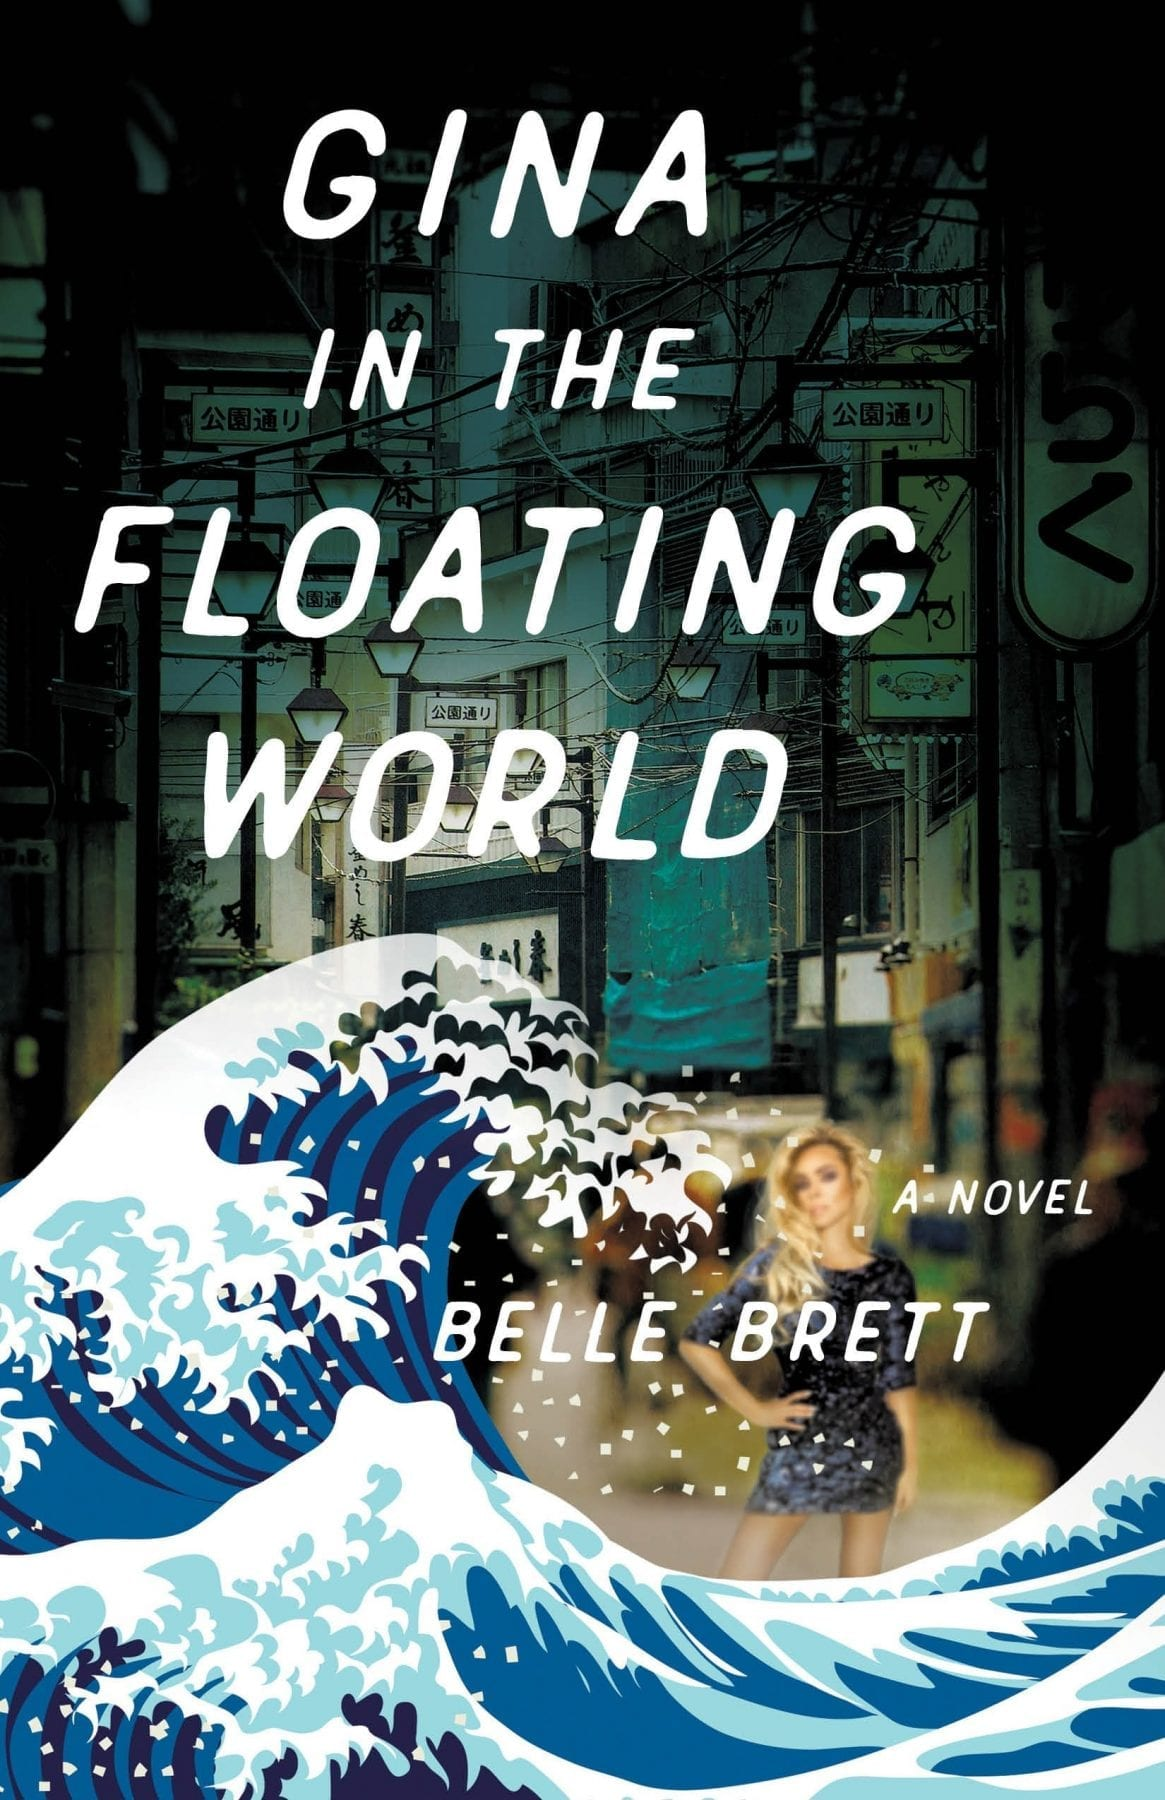 Gina in the Floating World by Belle Brett